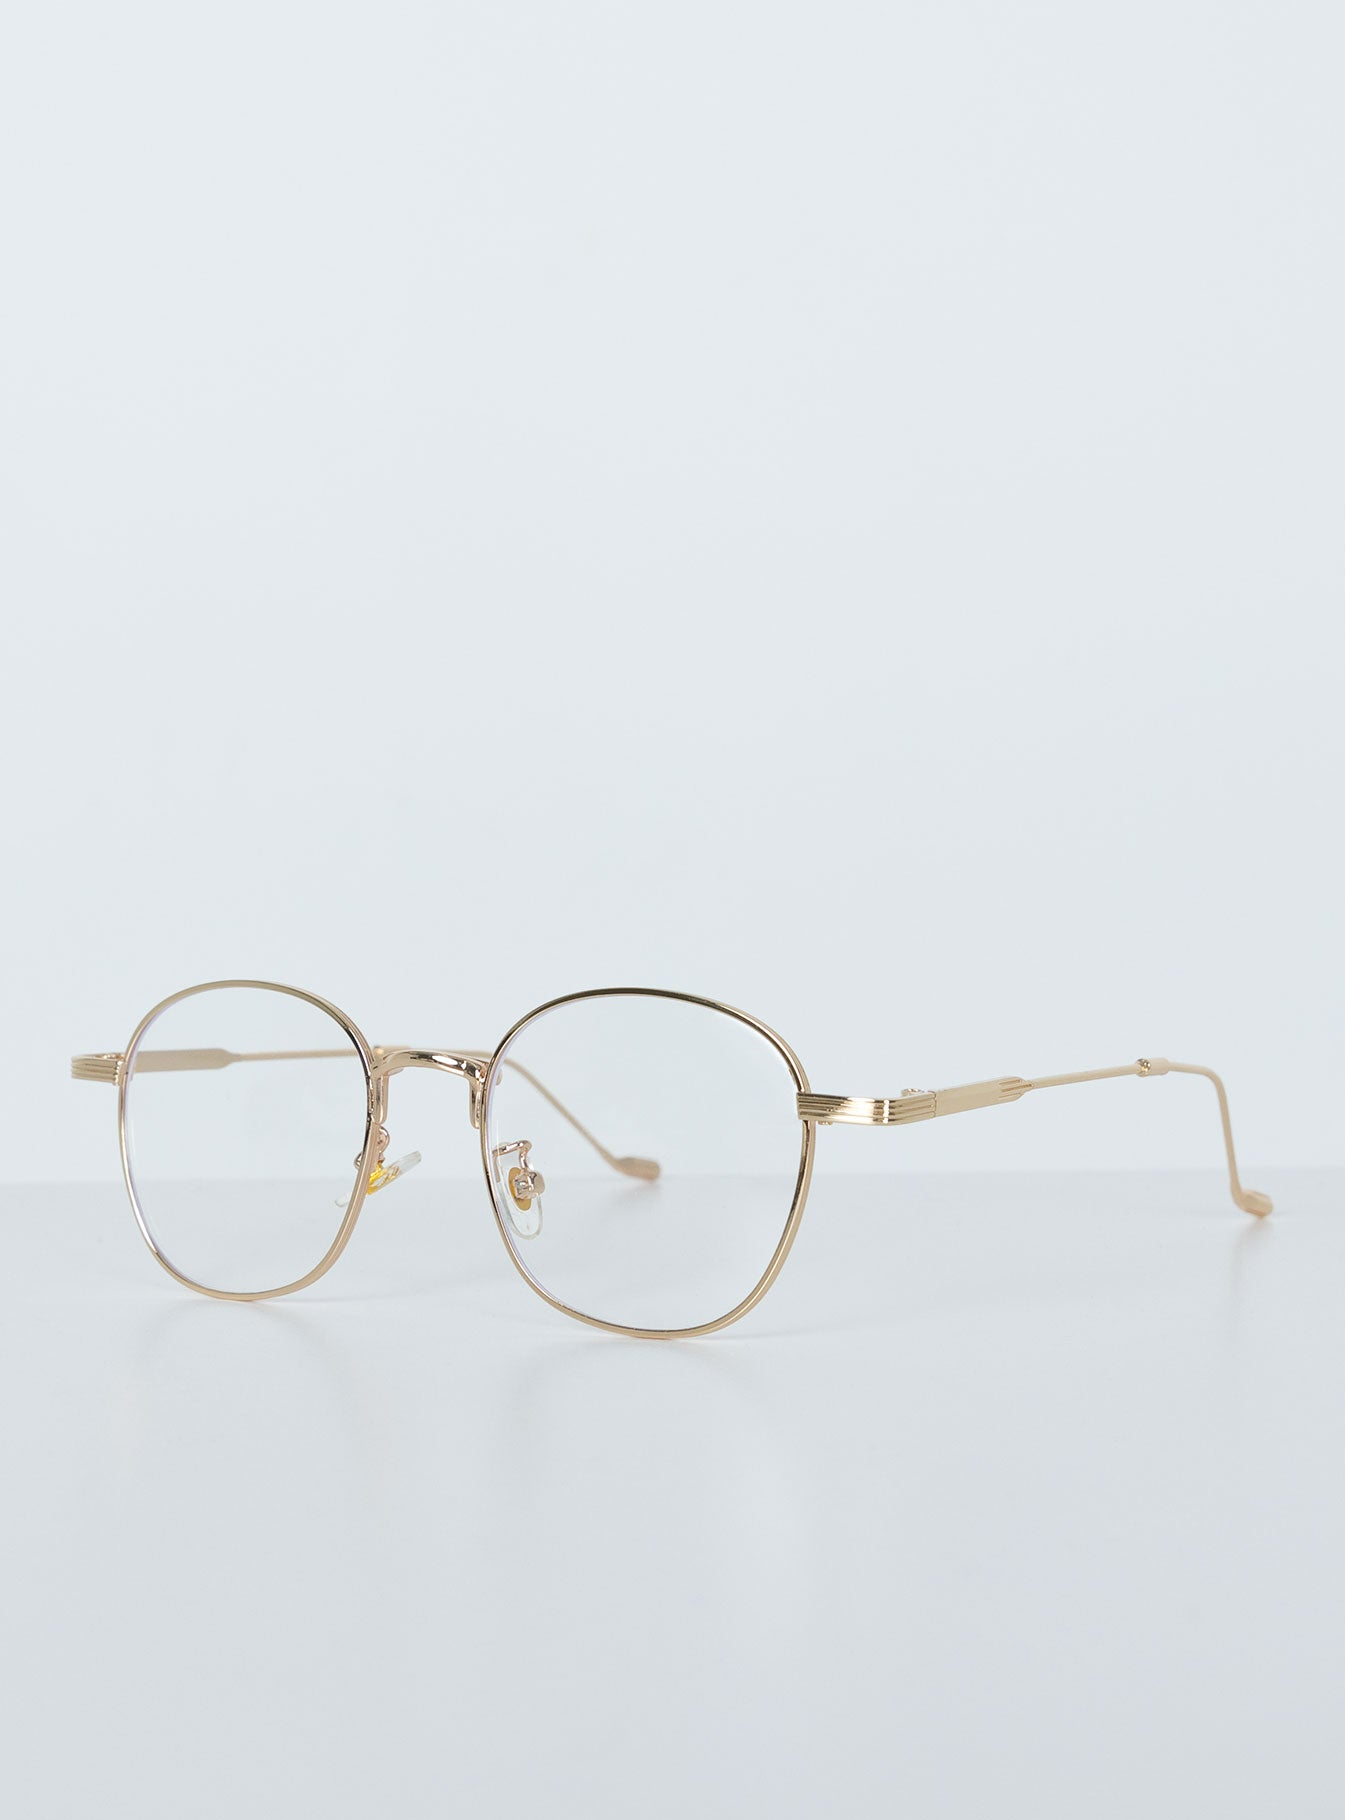 Lorrie Blue Light Glasses Gold